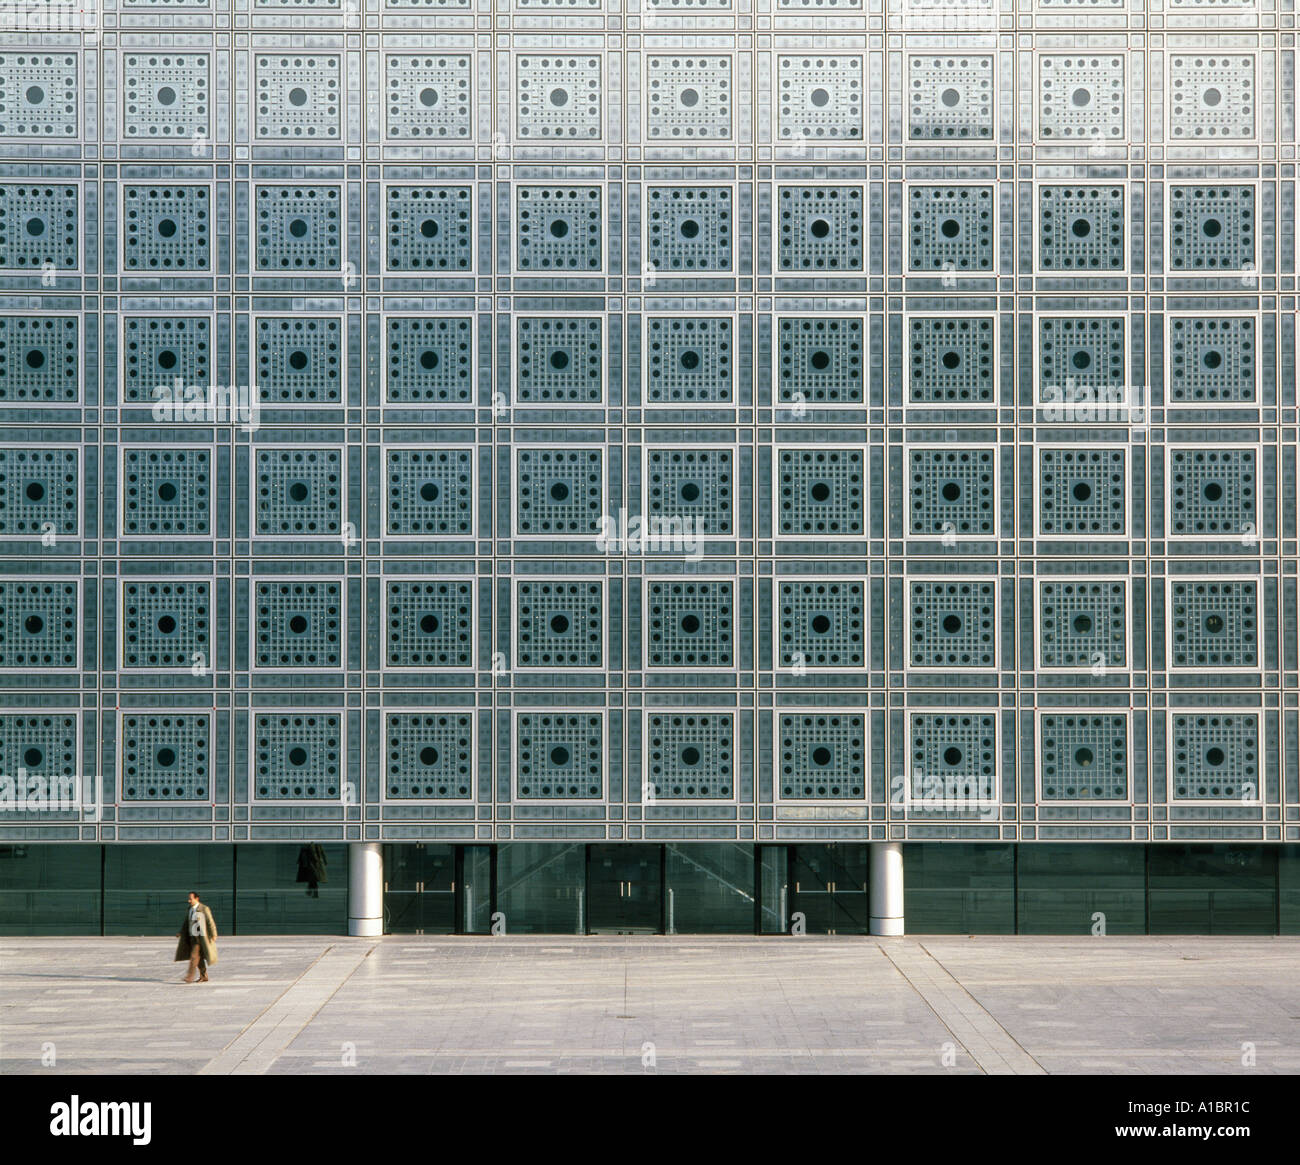 Institut du Monde Arabe, South facade, Paris, 1987. Photosensitive window screens. Architect: Jean Nouvel Stock Photo